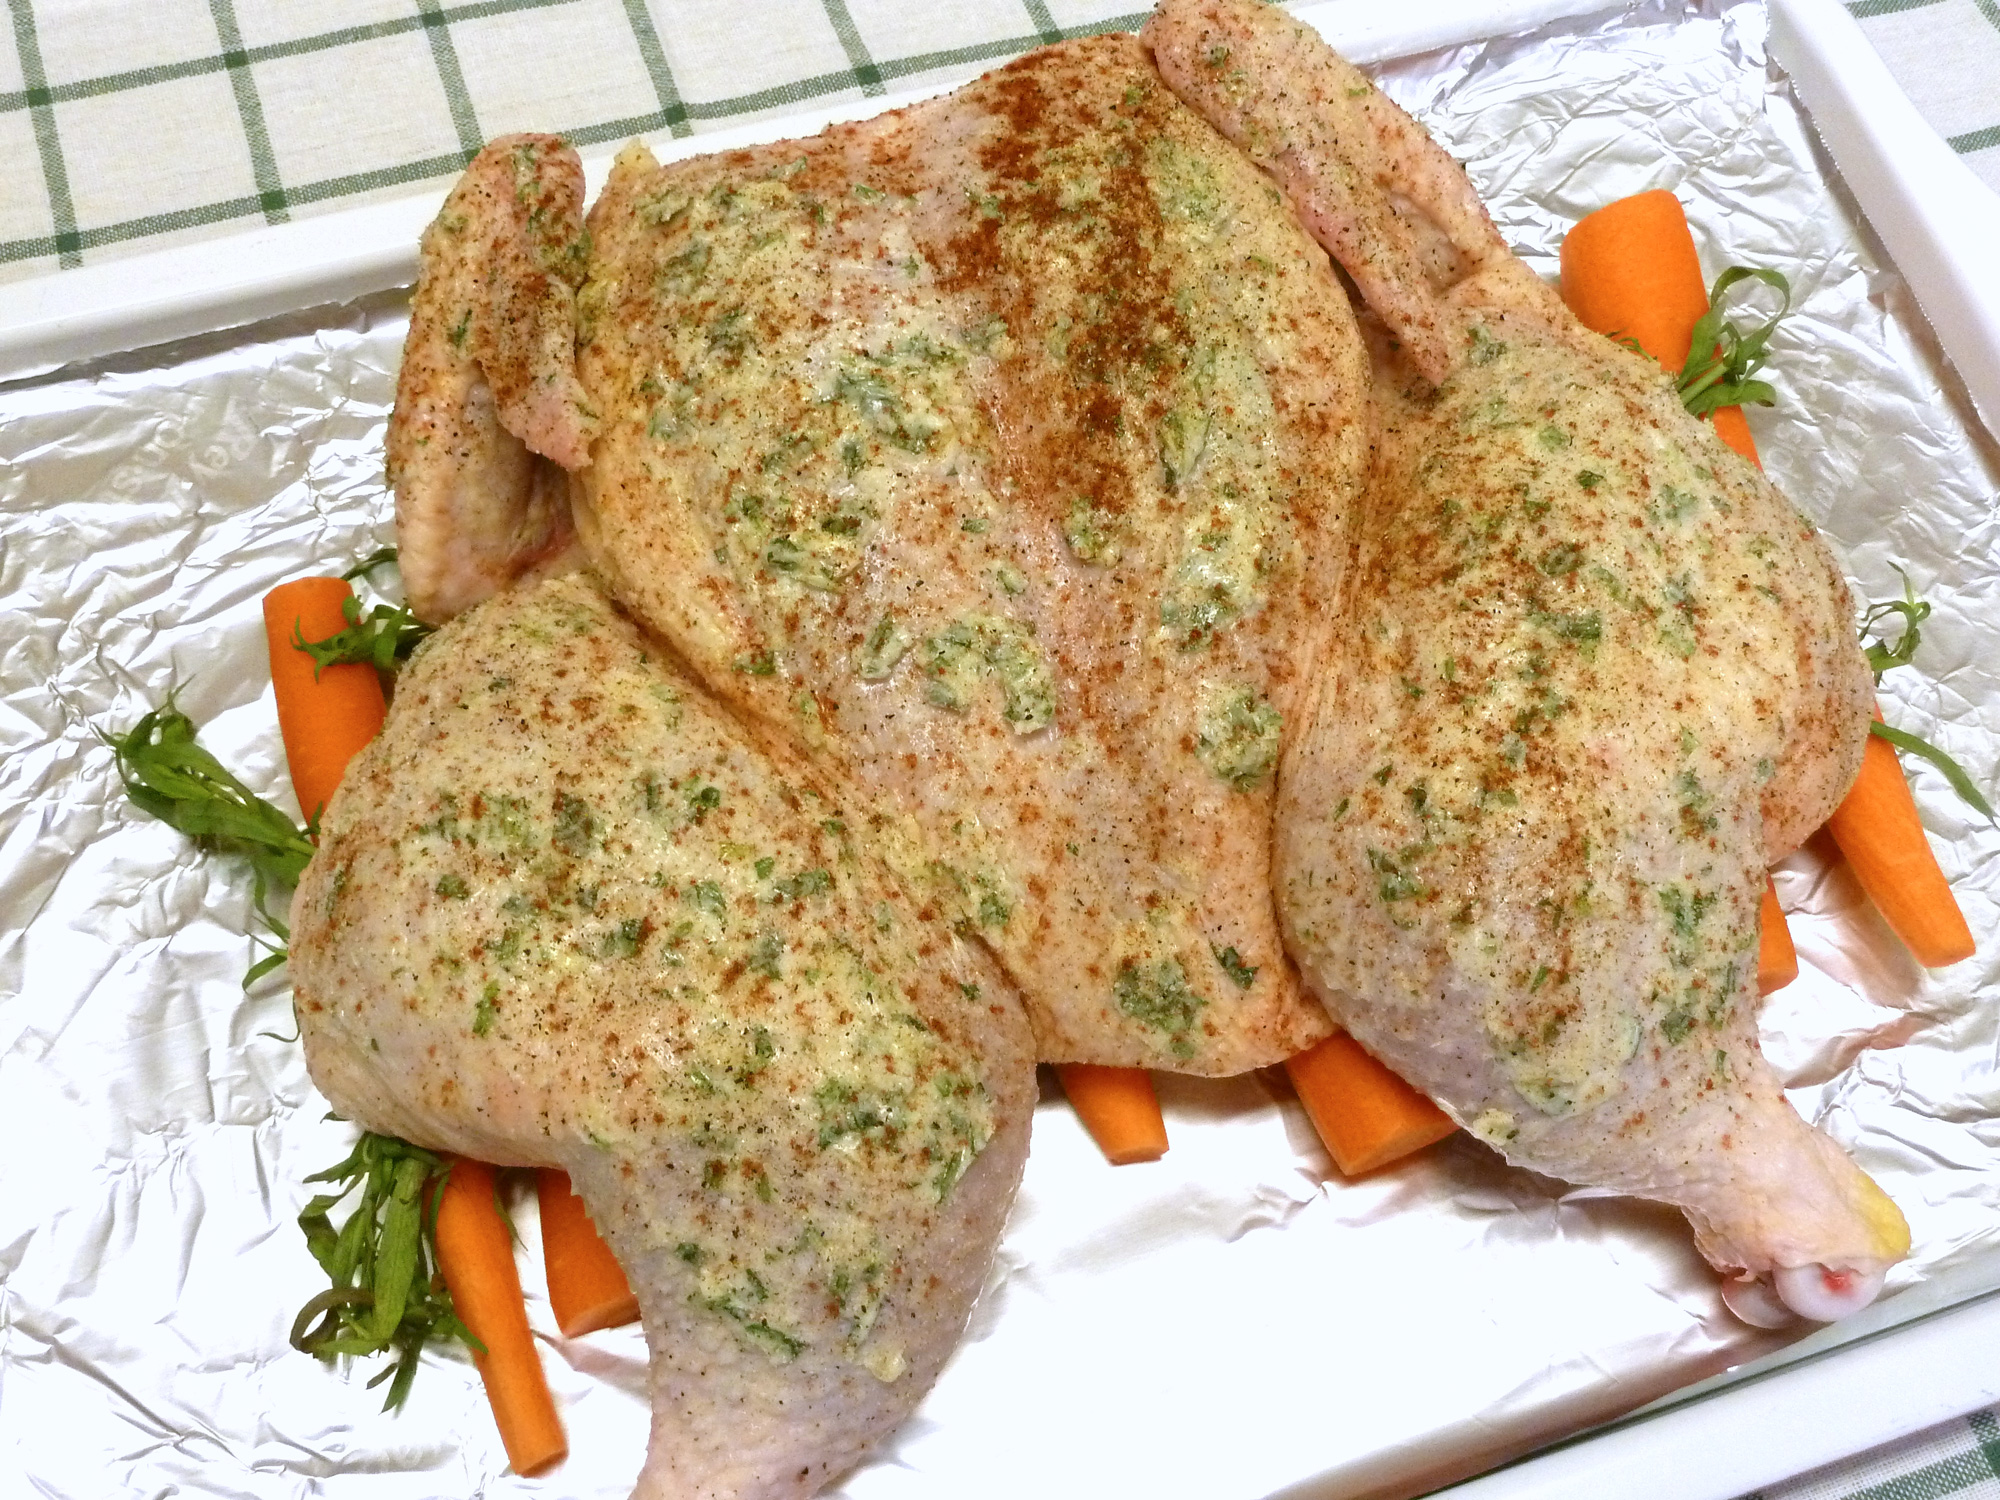 The spatchcocked chicken is rubbed with compound garlic tarragon butter and sprinkled with salt, onion powder, and sweet paprika.